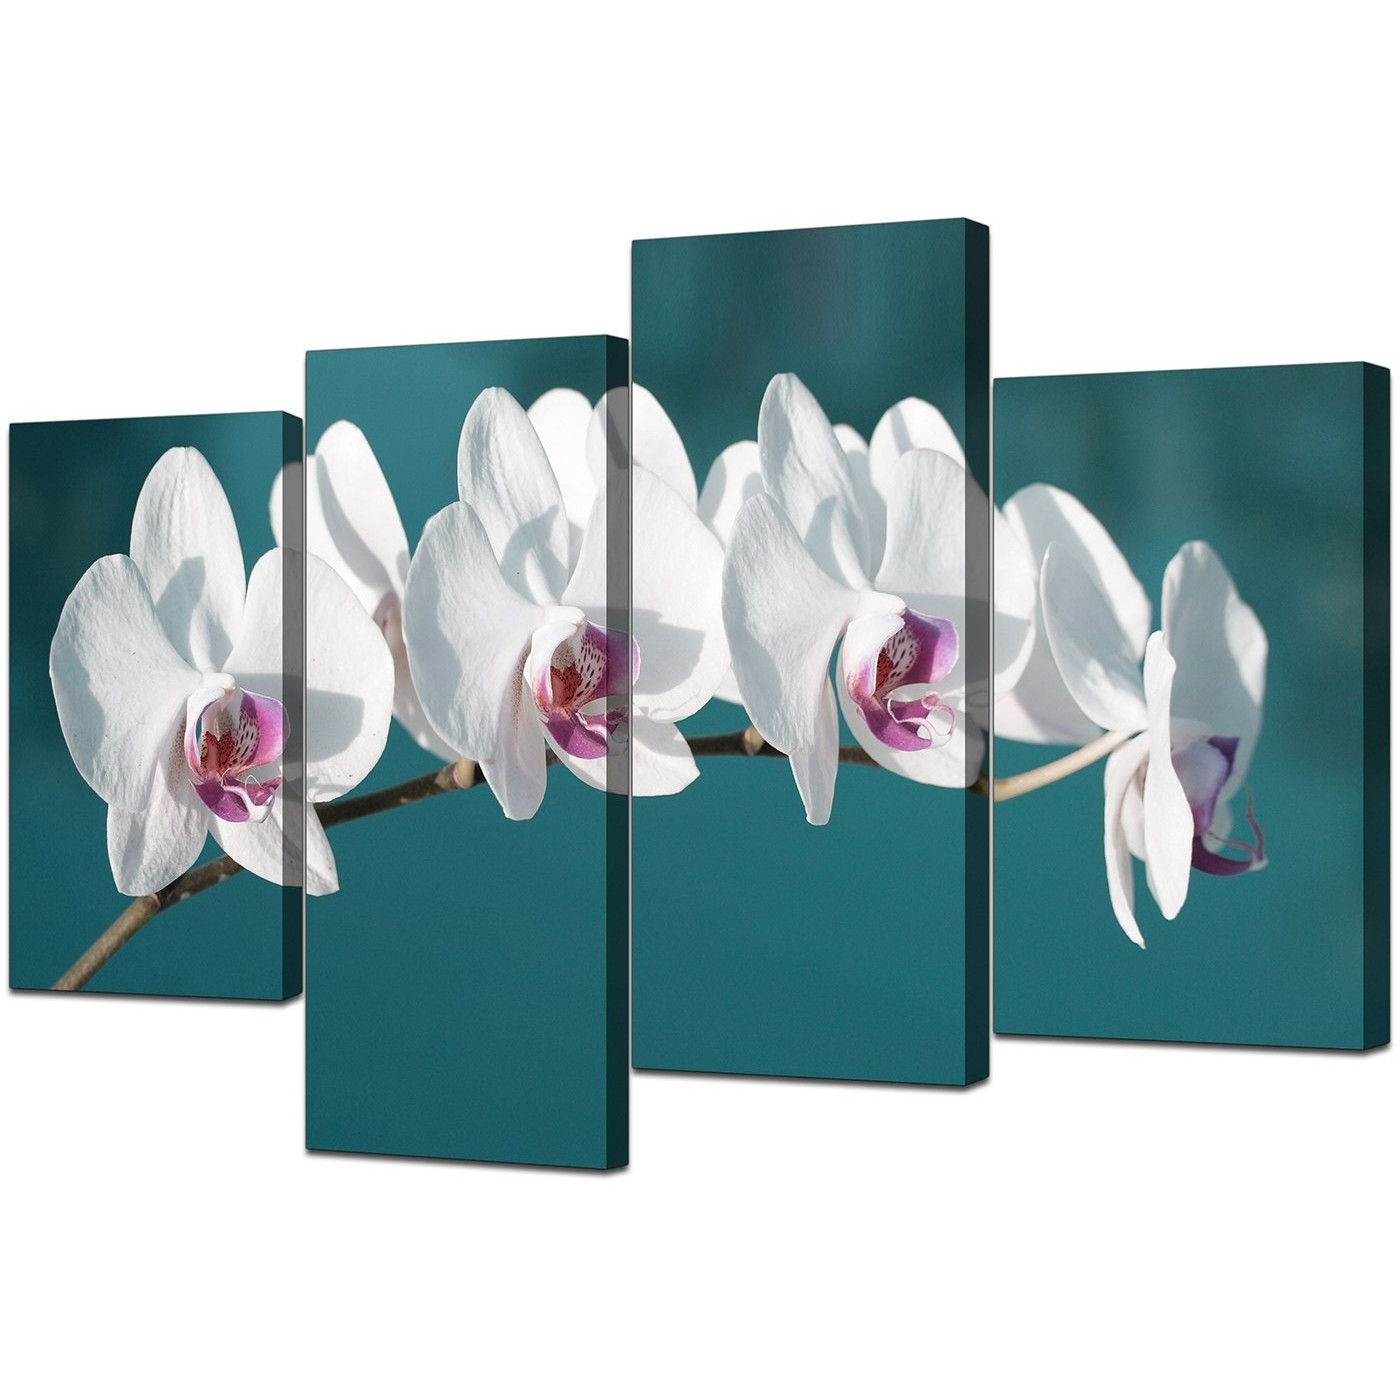 Well Liked Canvas Wall Art Of White Orchids On Teal Background For Your Office Within Teal Wall Art Uk (View 11 of 15)